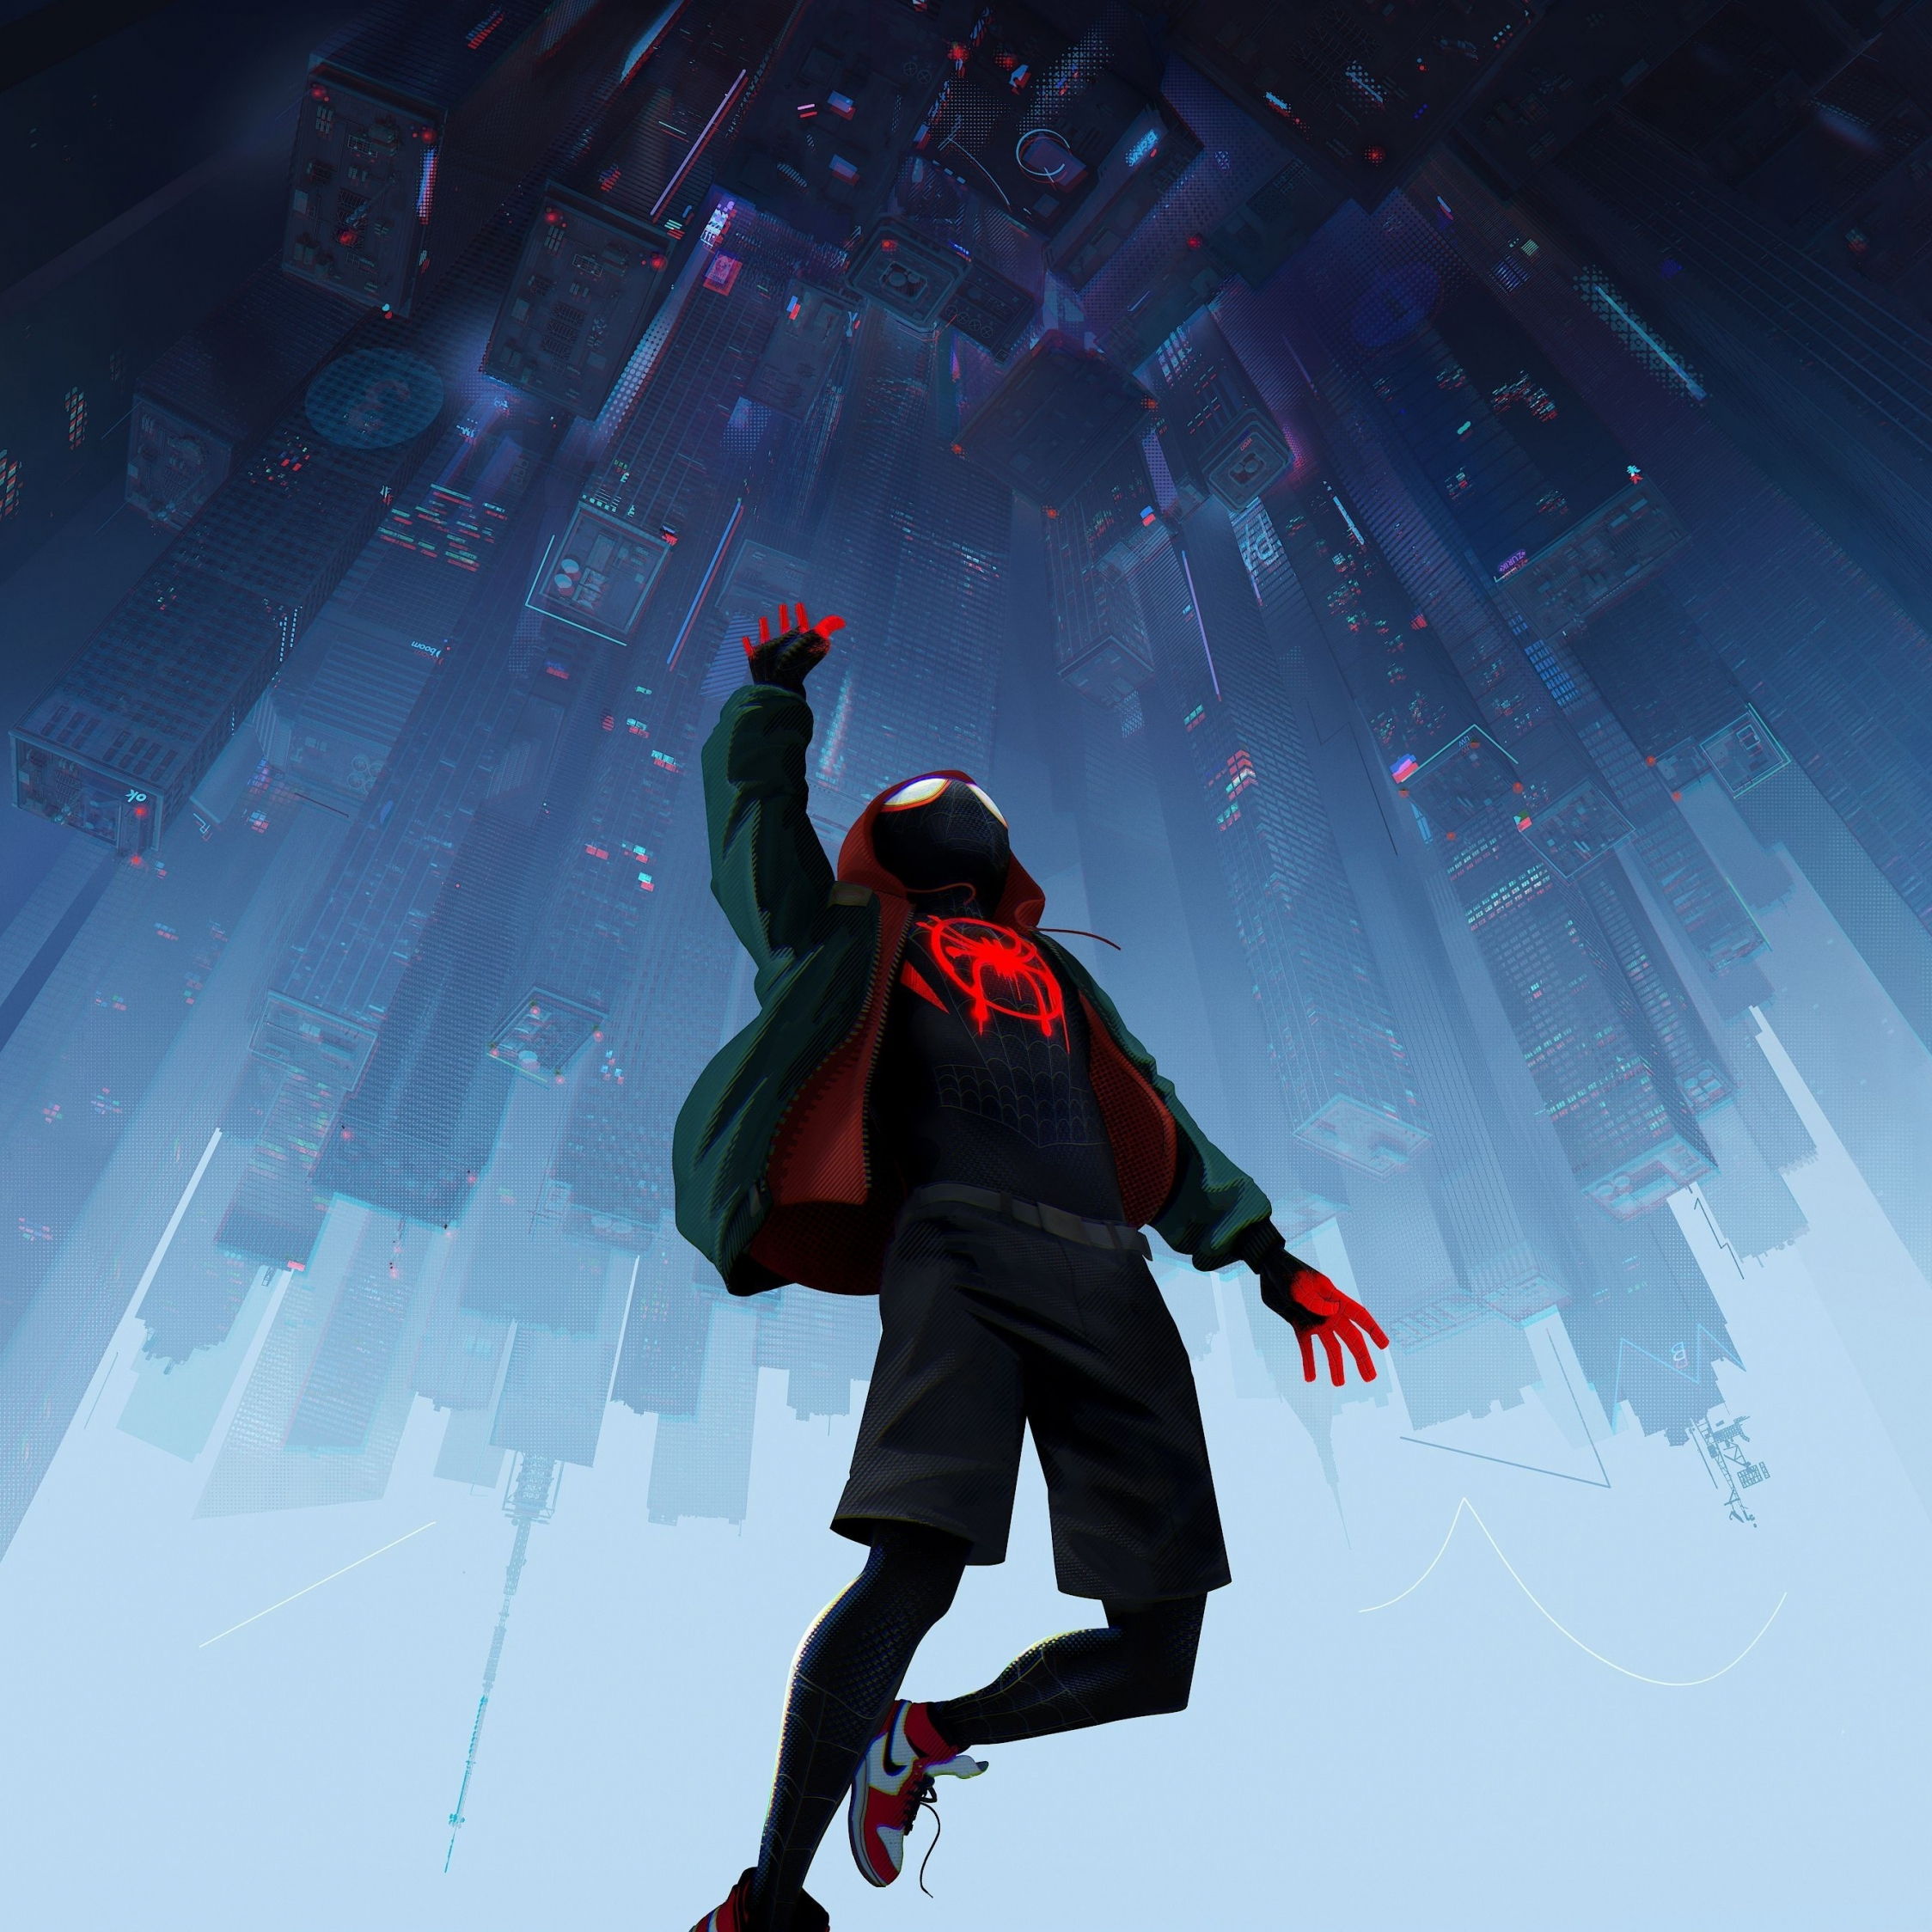 Download 2248x2248 Wallpaper Spider-man: Into The Spider